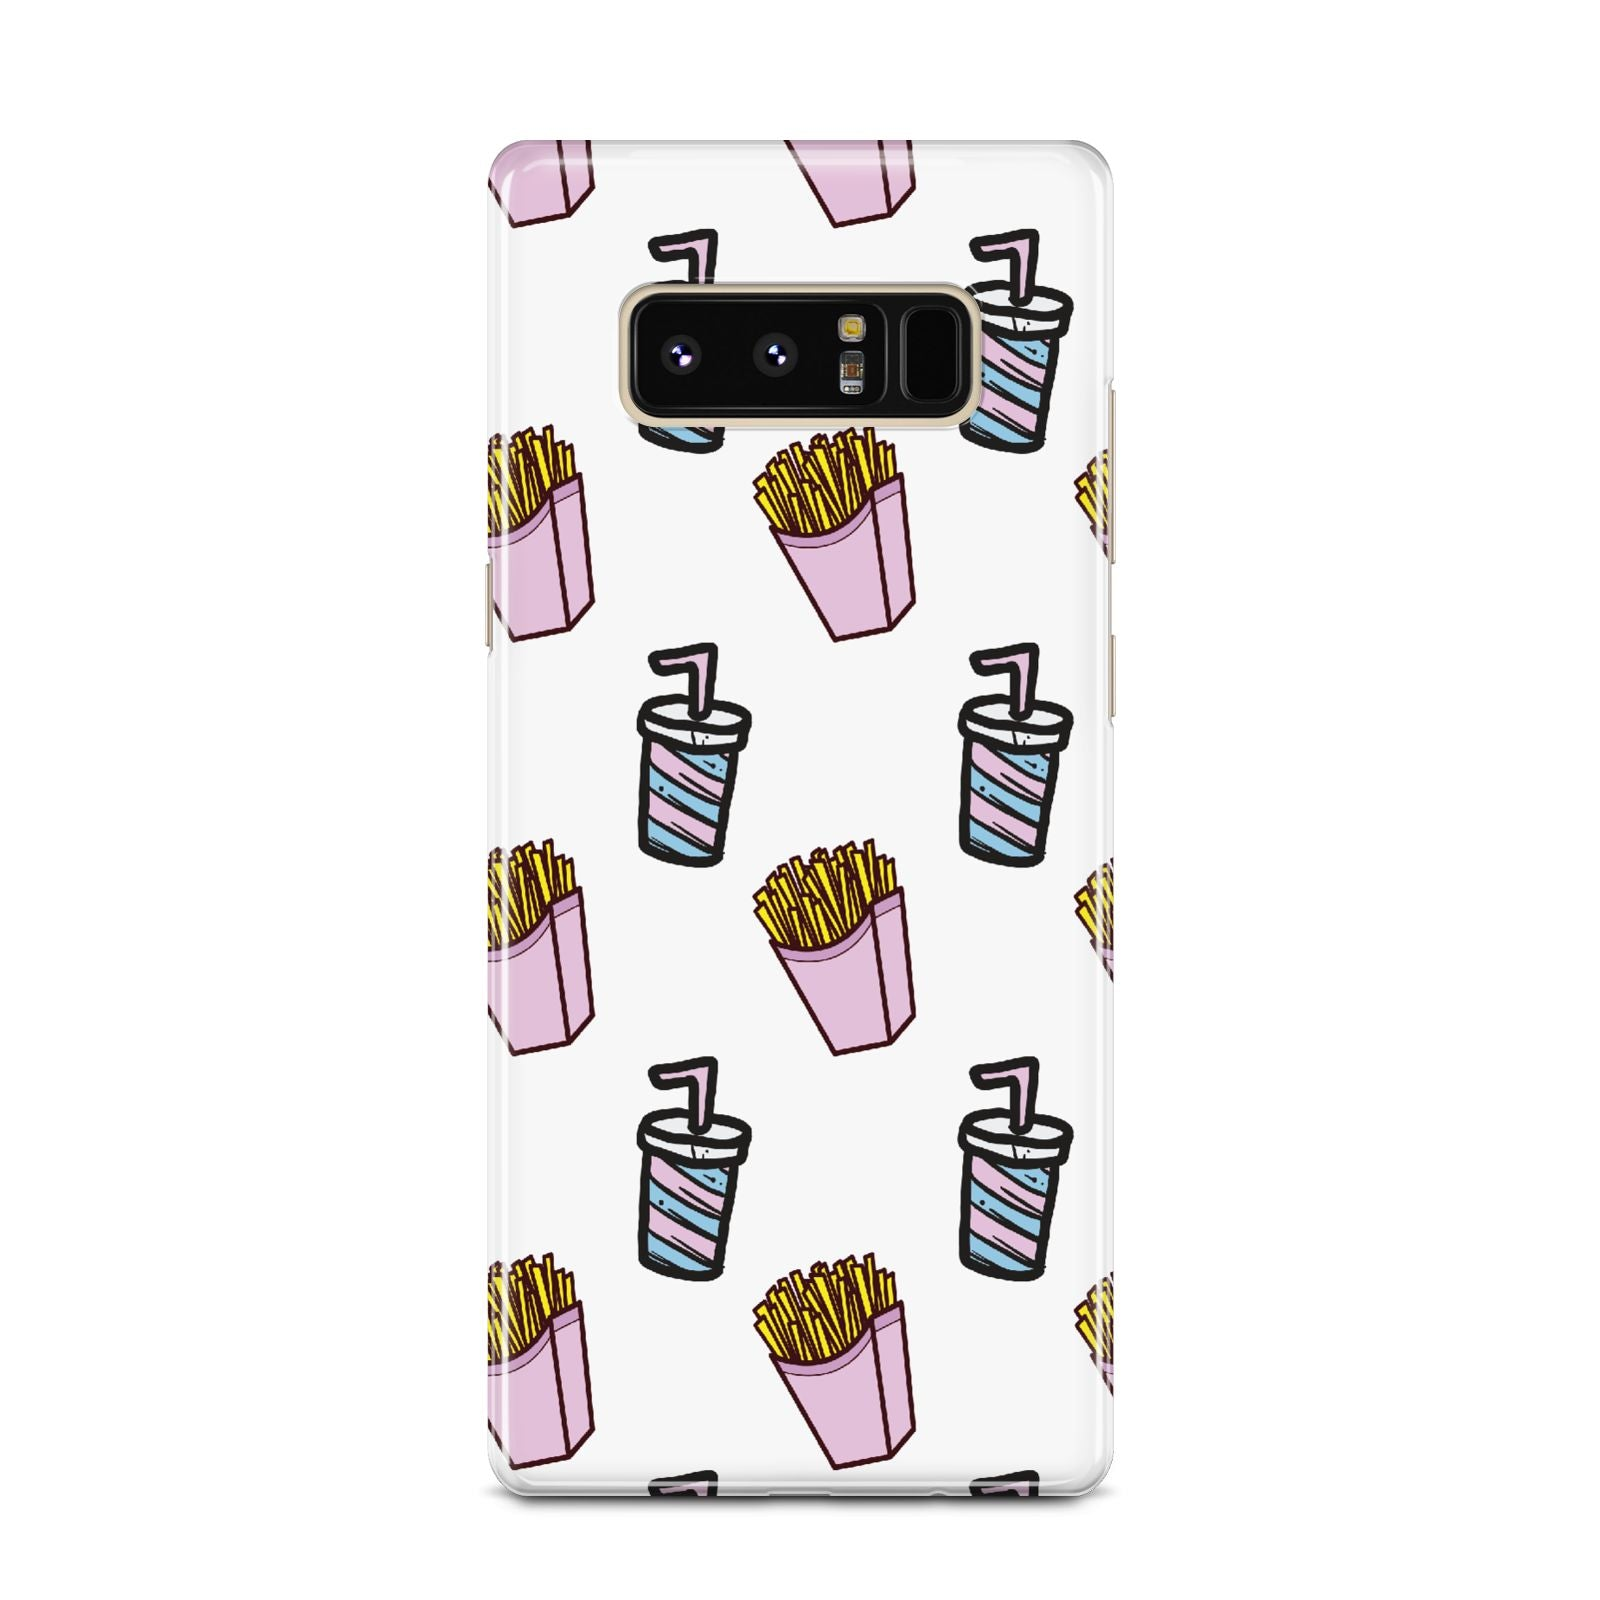 Fries Shake Fast Food Samsung Galaxy Note 8 Case